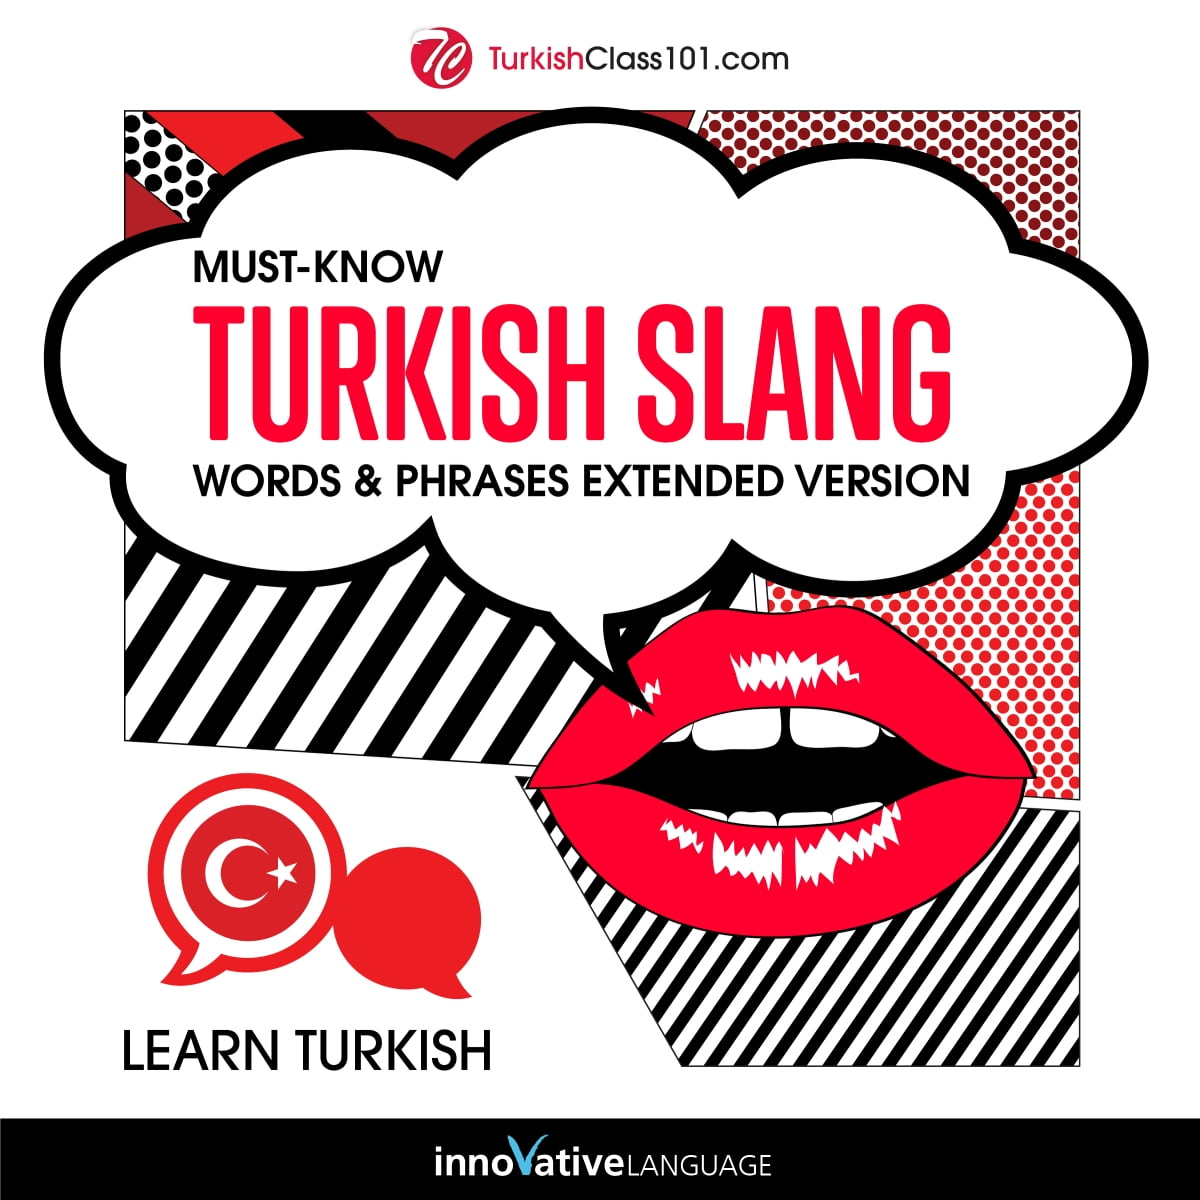 Learn Turkish: Must-Know Turkish Slang Words & Phrases (Extended Version)  audiobook by Innovative Language Learning - Rakuten Kobo